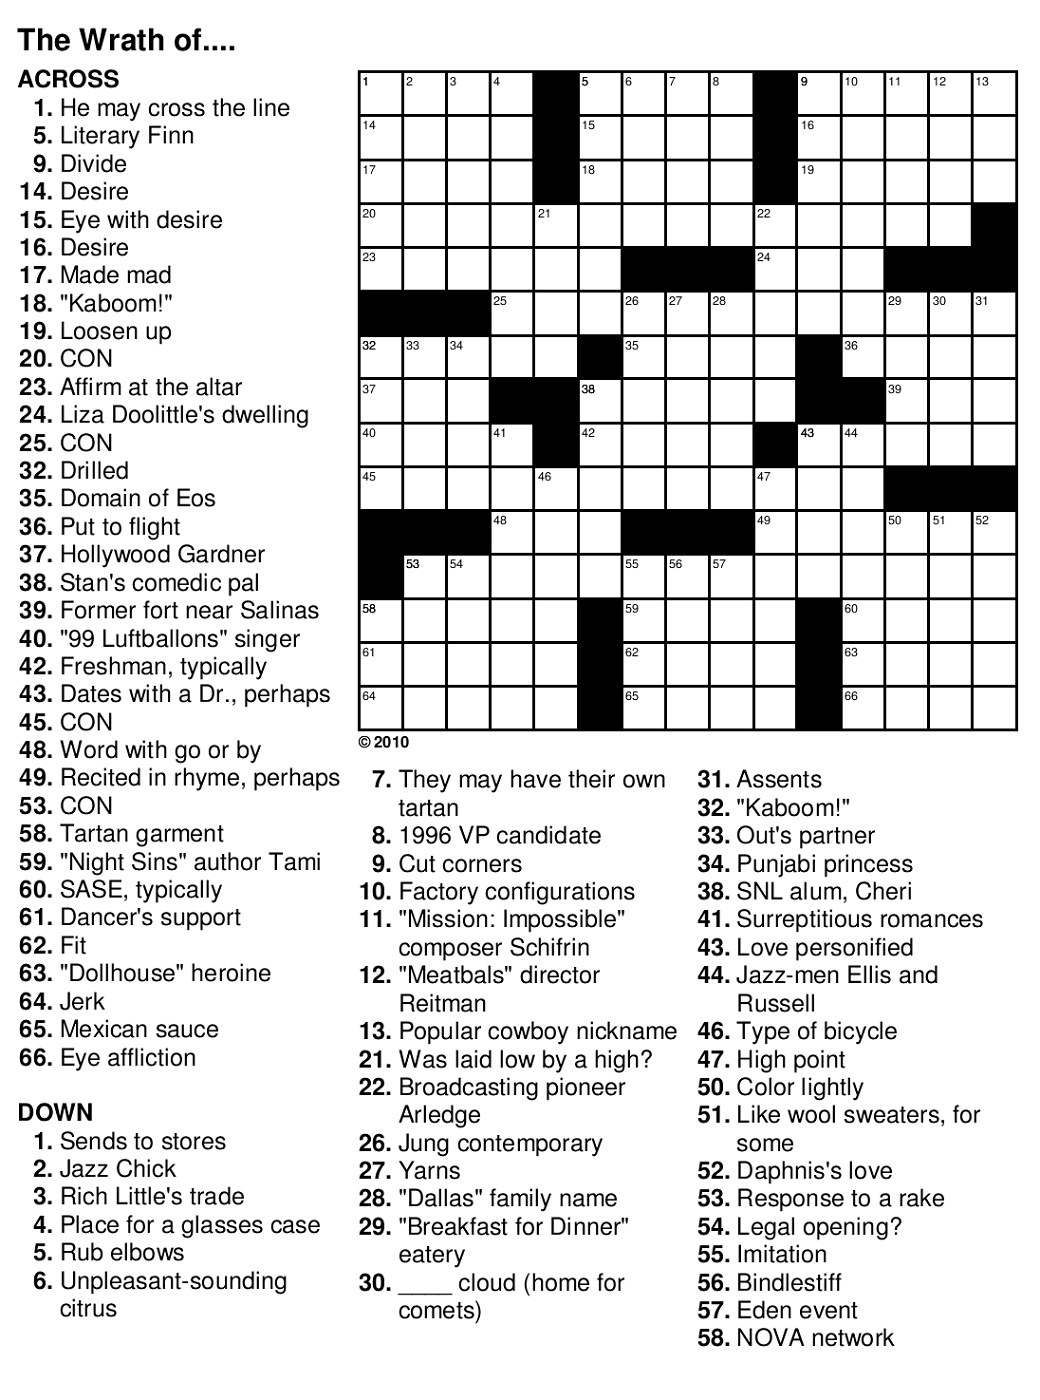 Easy Crossword Puzzles For Seniors | Activity Shelter - Printable Easy Crossword Puzzles For Seniors